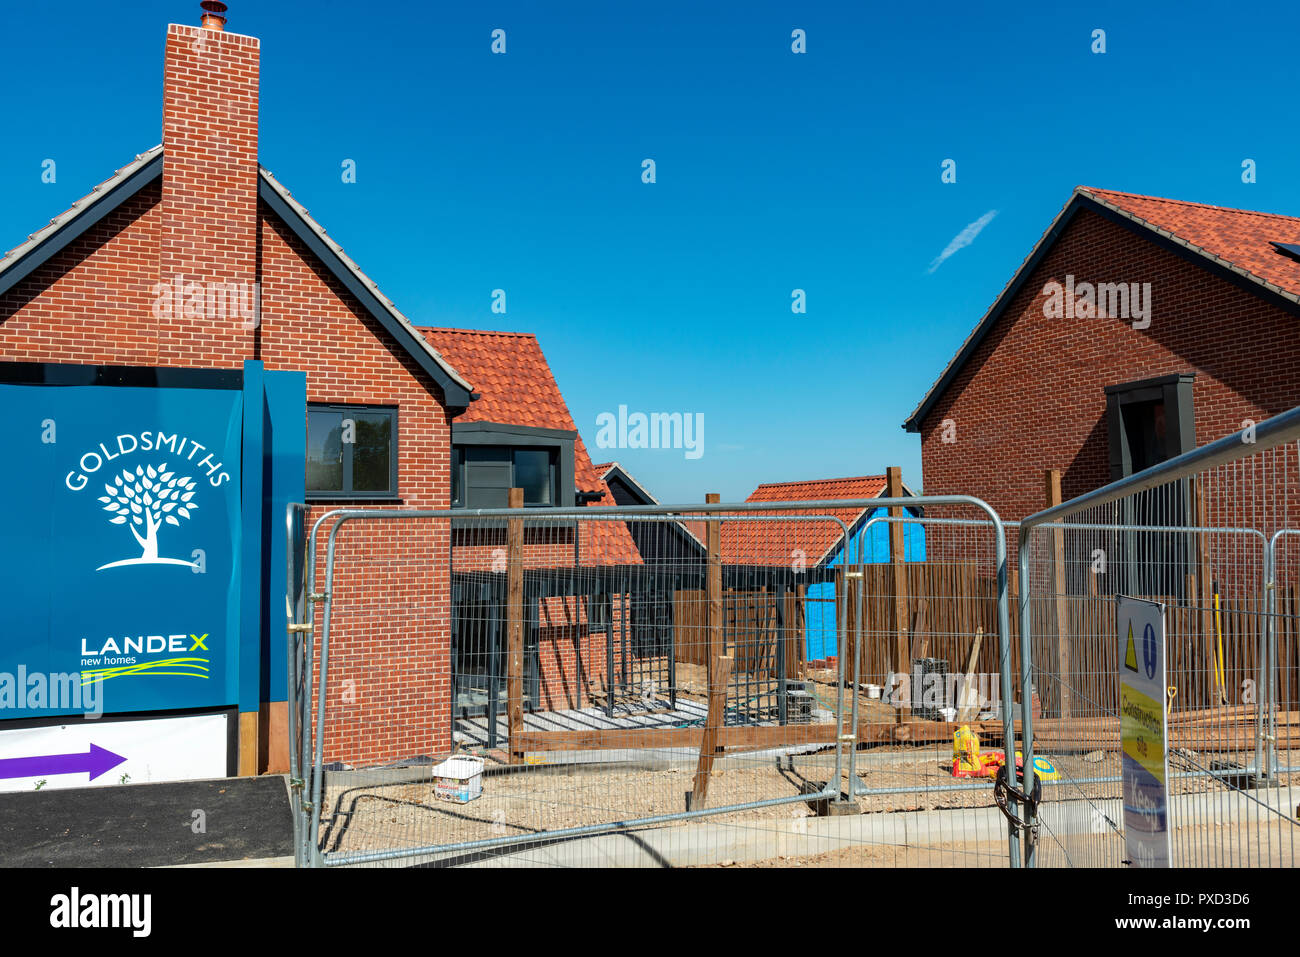 New homes under construction, Ufford, Suffolk, UK. - Stock Image